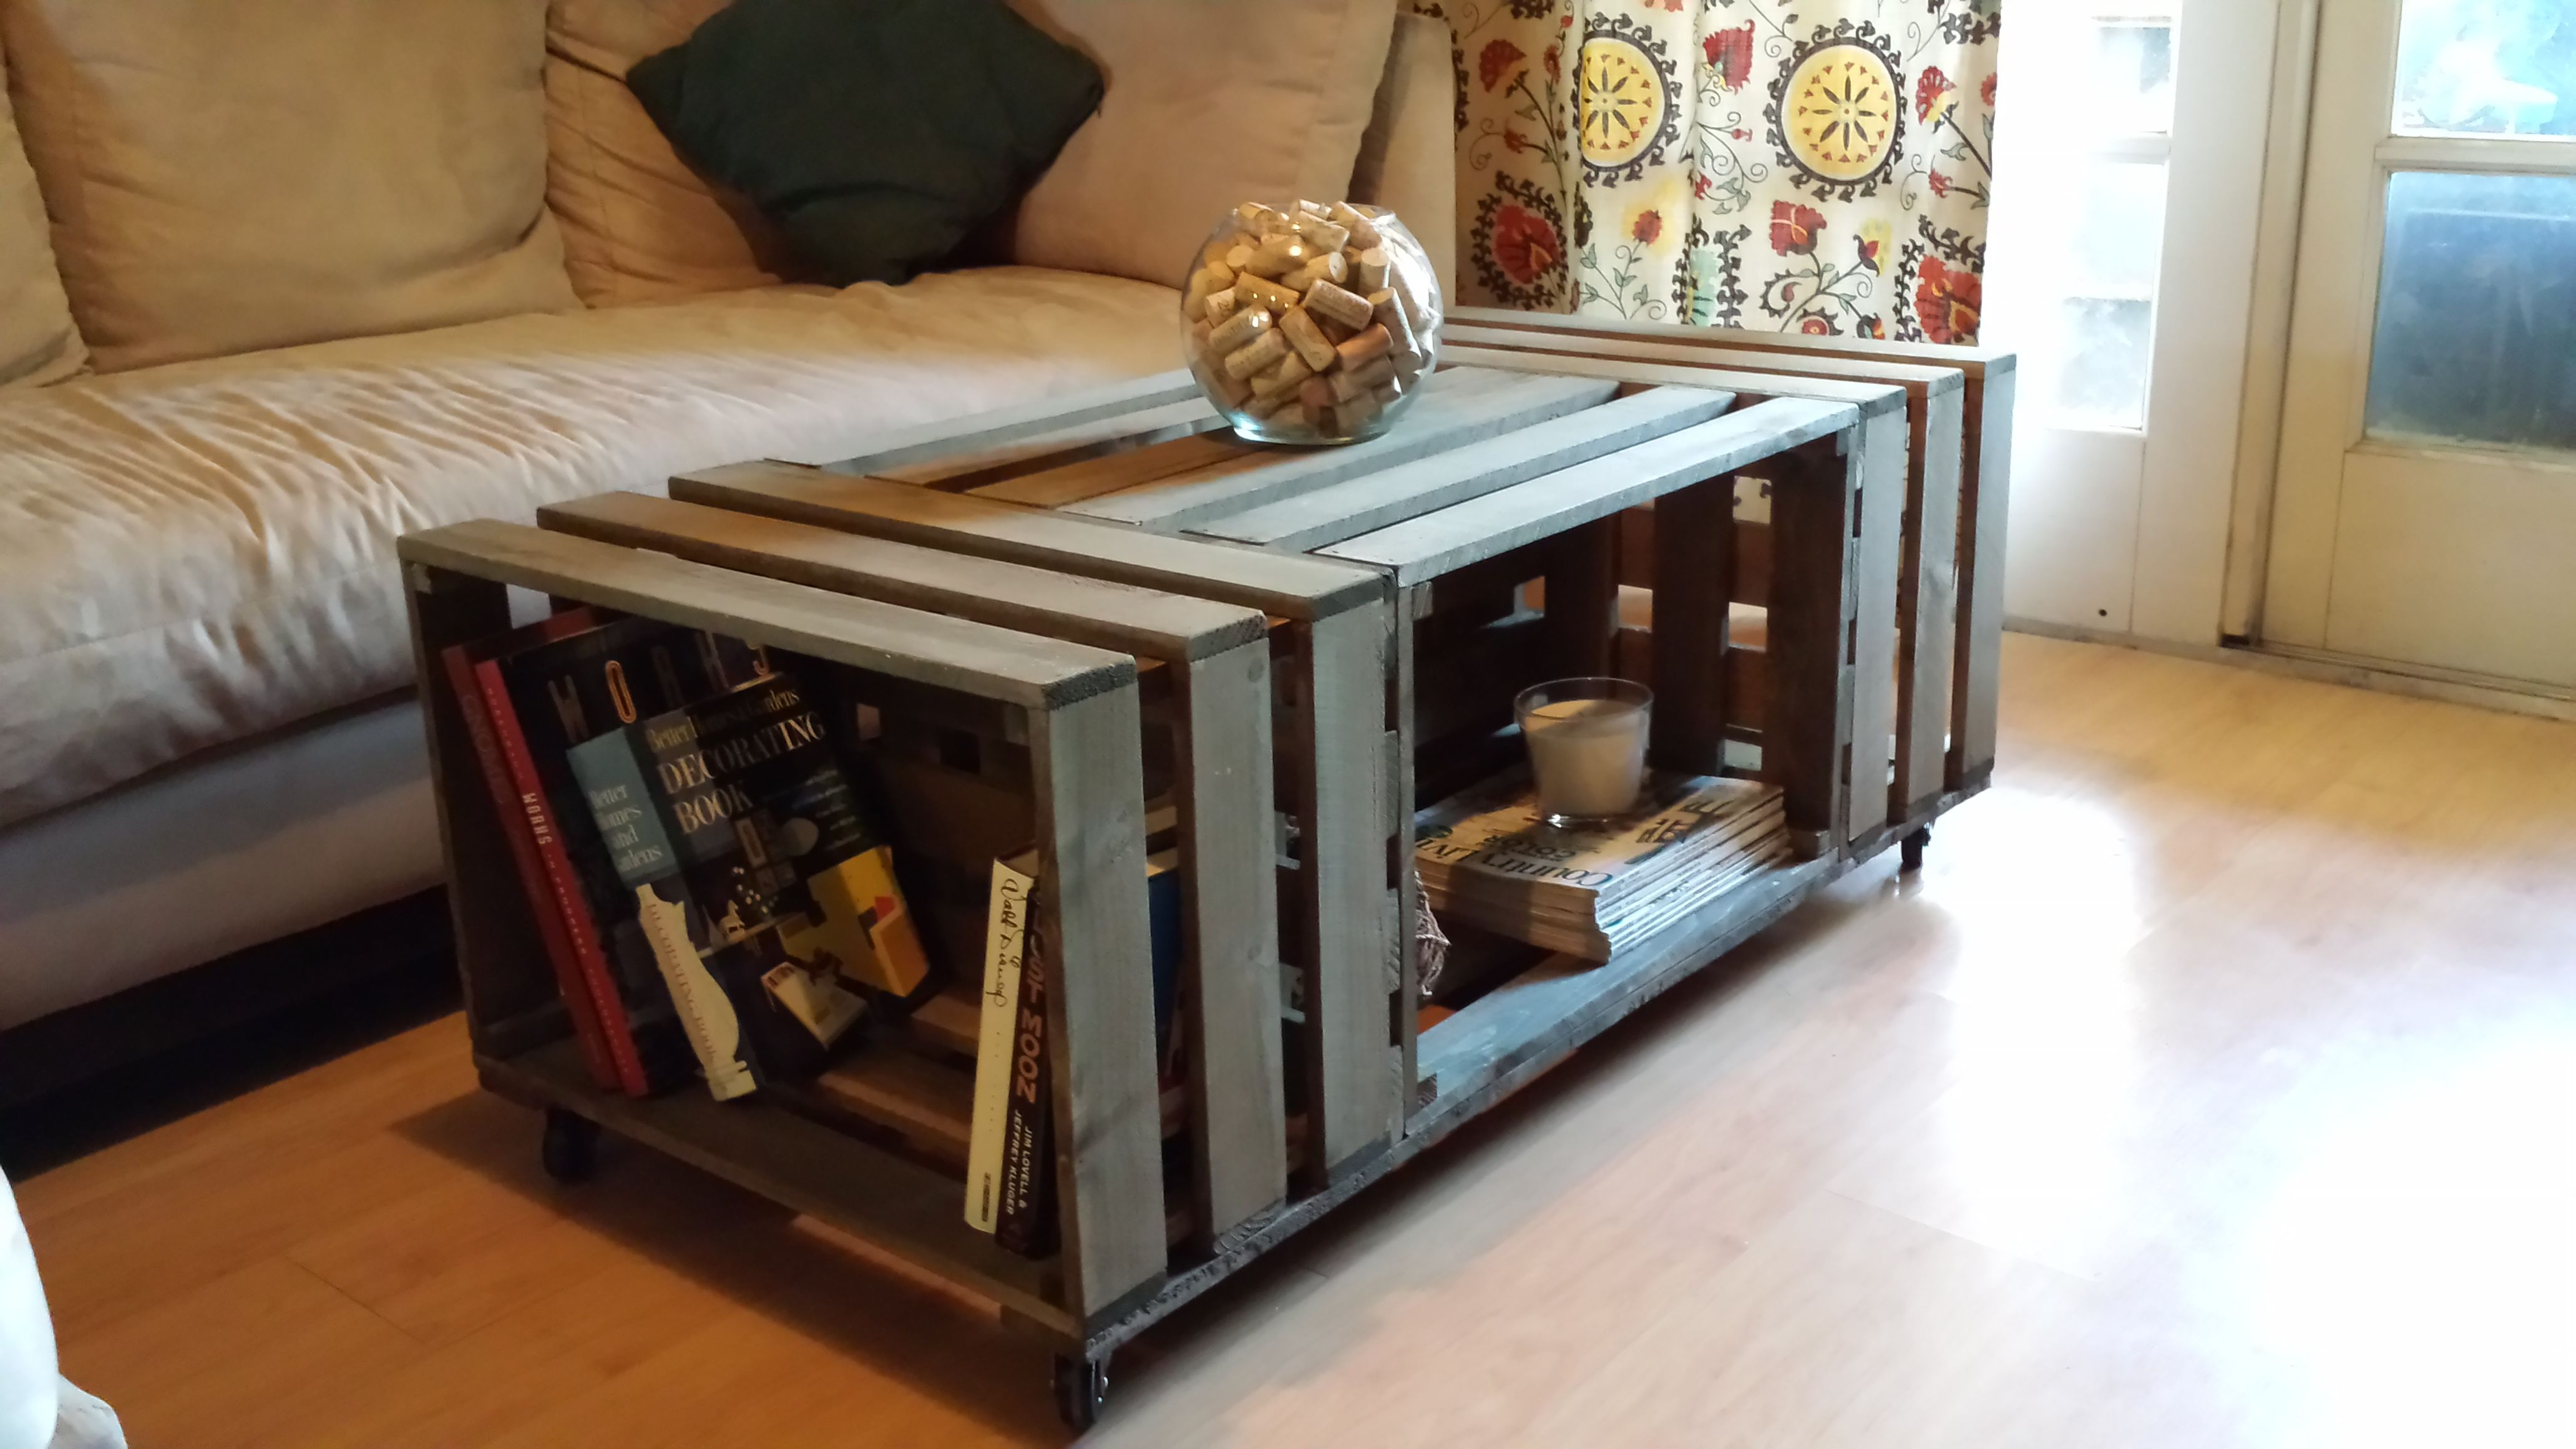 Handmade Rustic Wooden Crate Coffee Table for Home ... |Wooden Crate Coffee Table